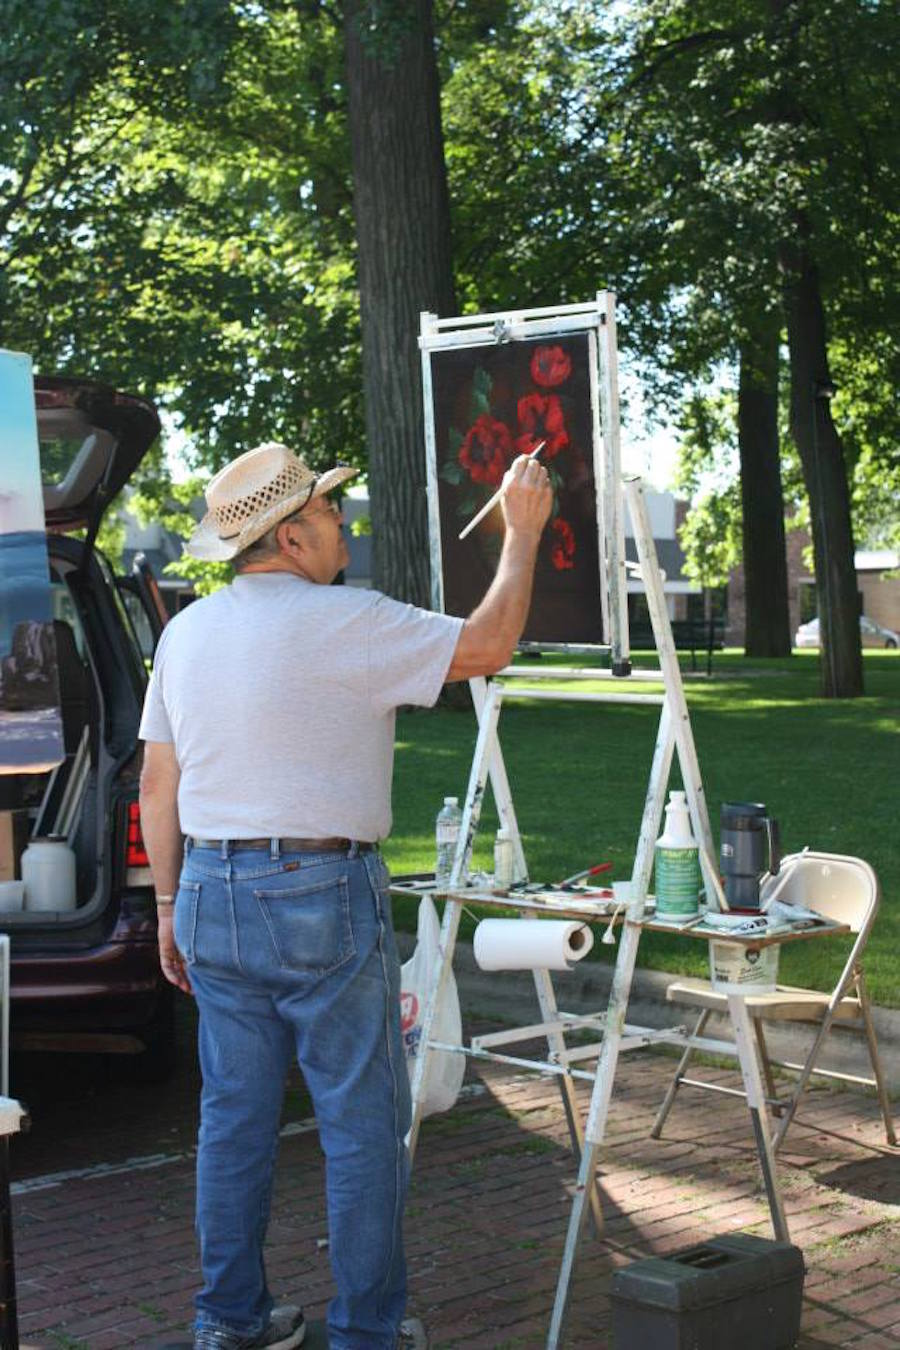 Illinois woodford county metamora - Artists Are Part Of The Scene At The Annual Metamora Farmers Market Held June Through September